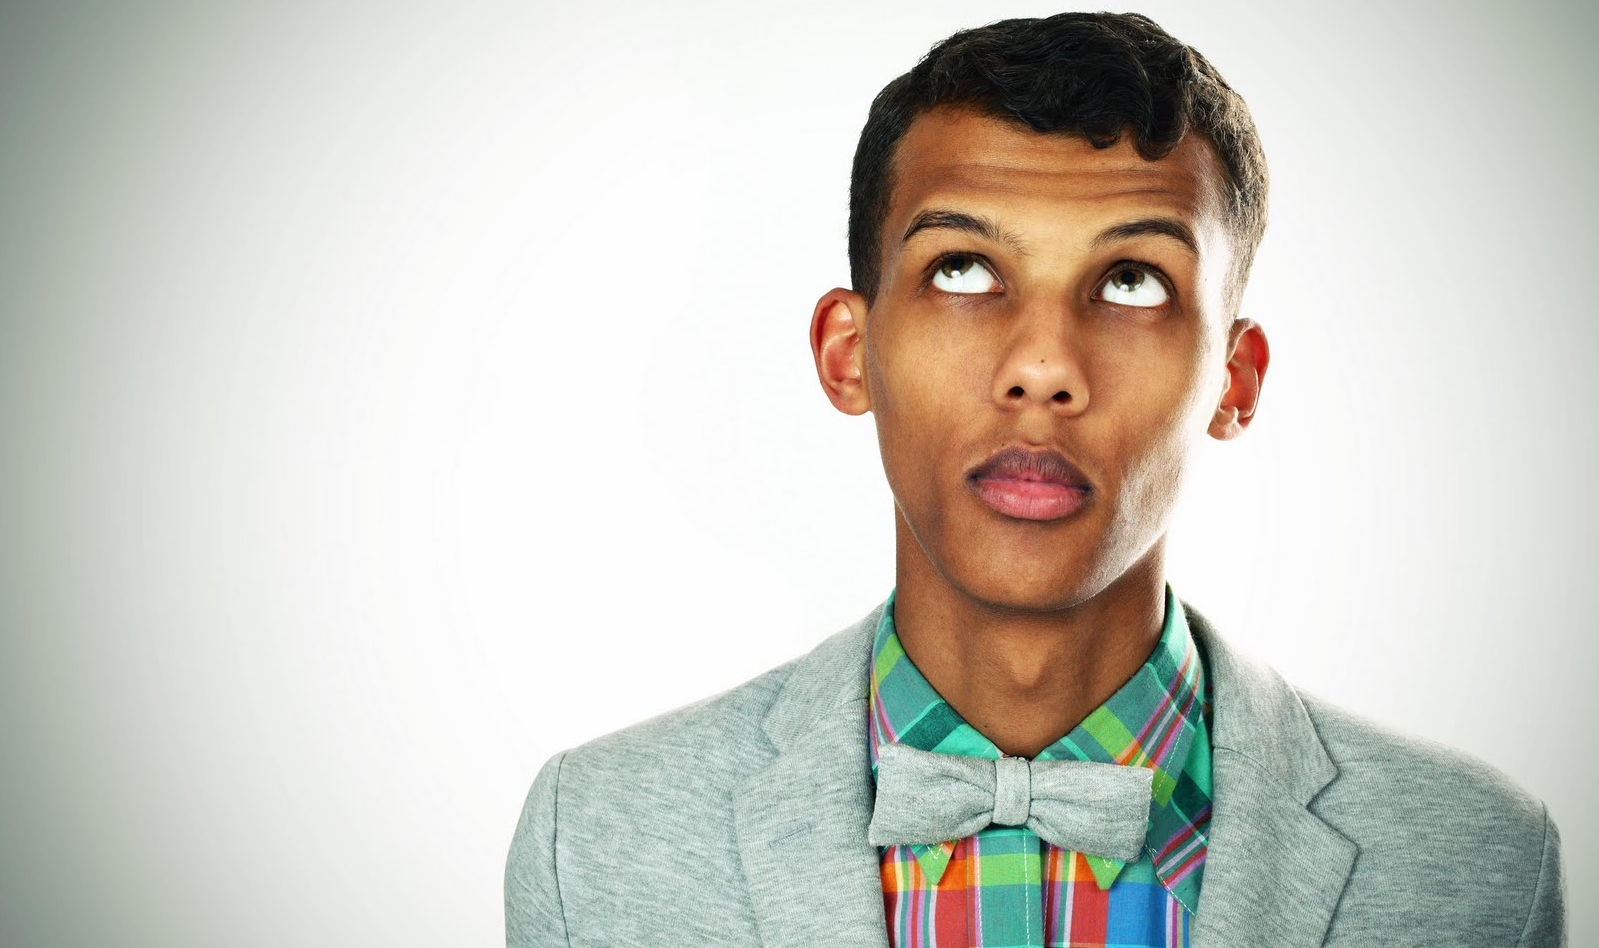 stromae-formidable-la-deviation